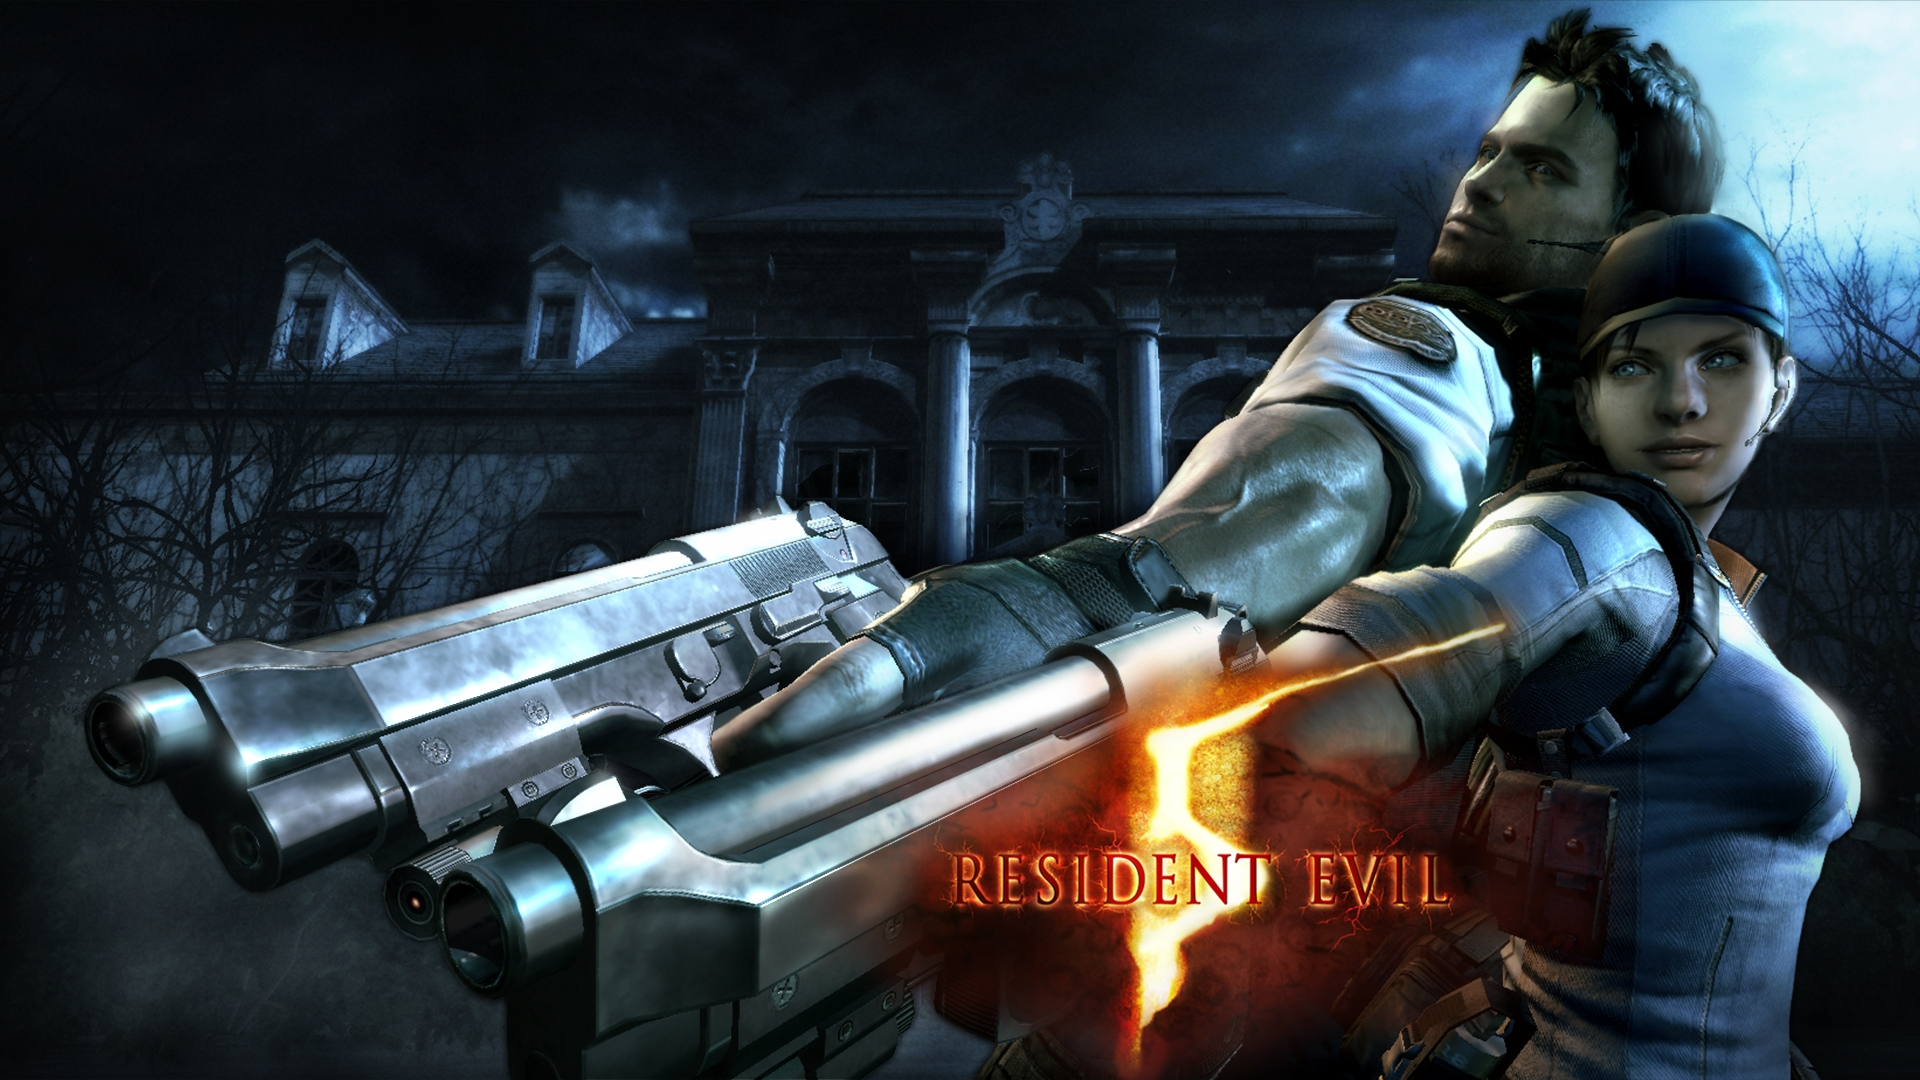 Resident Evil 5 Hd Wallpaper Background Image 1920x1080 Id